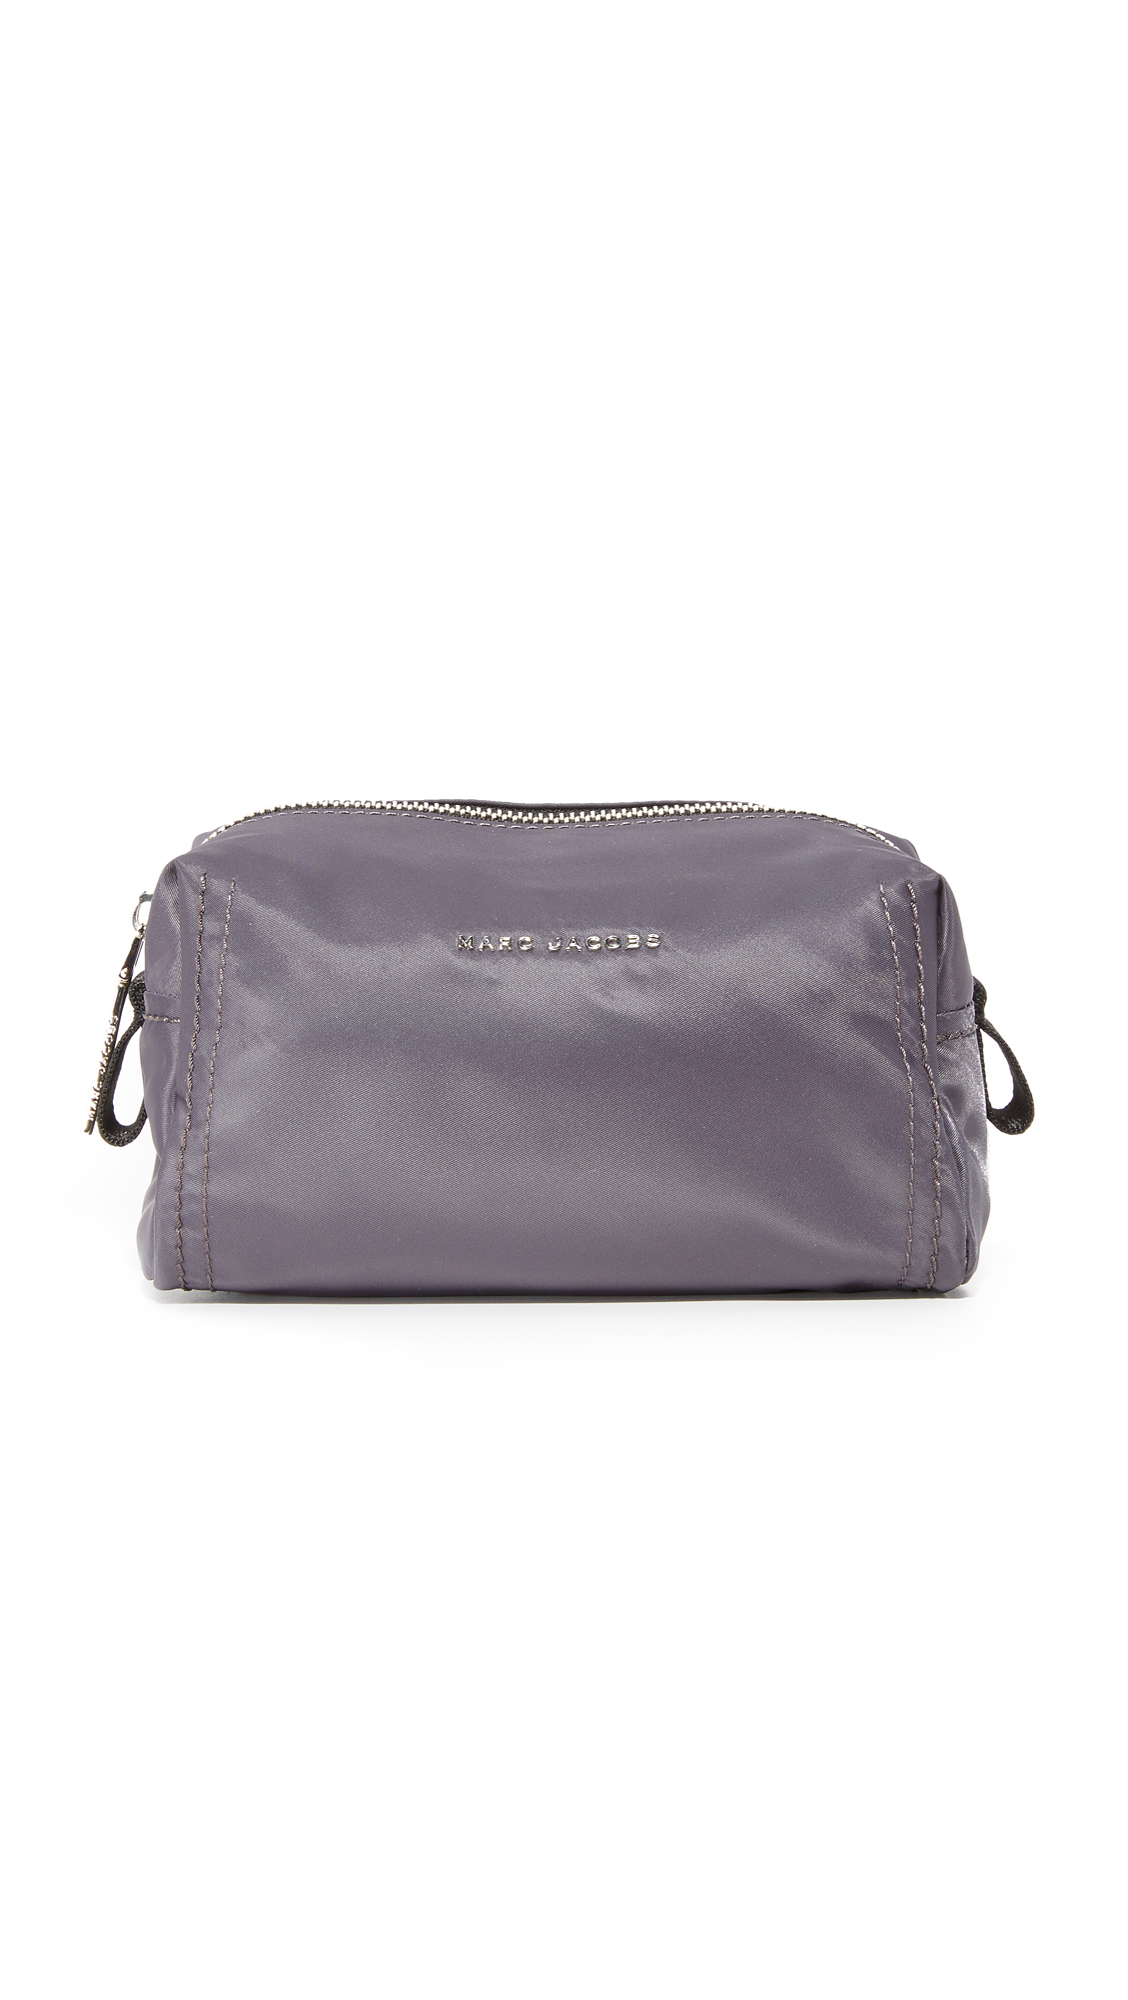 marc jacobs female marc jacobs easy large cosmetic case shadow